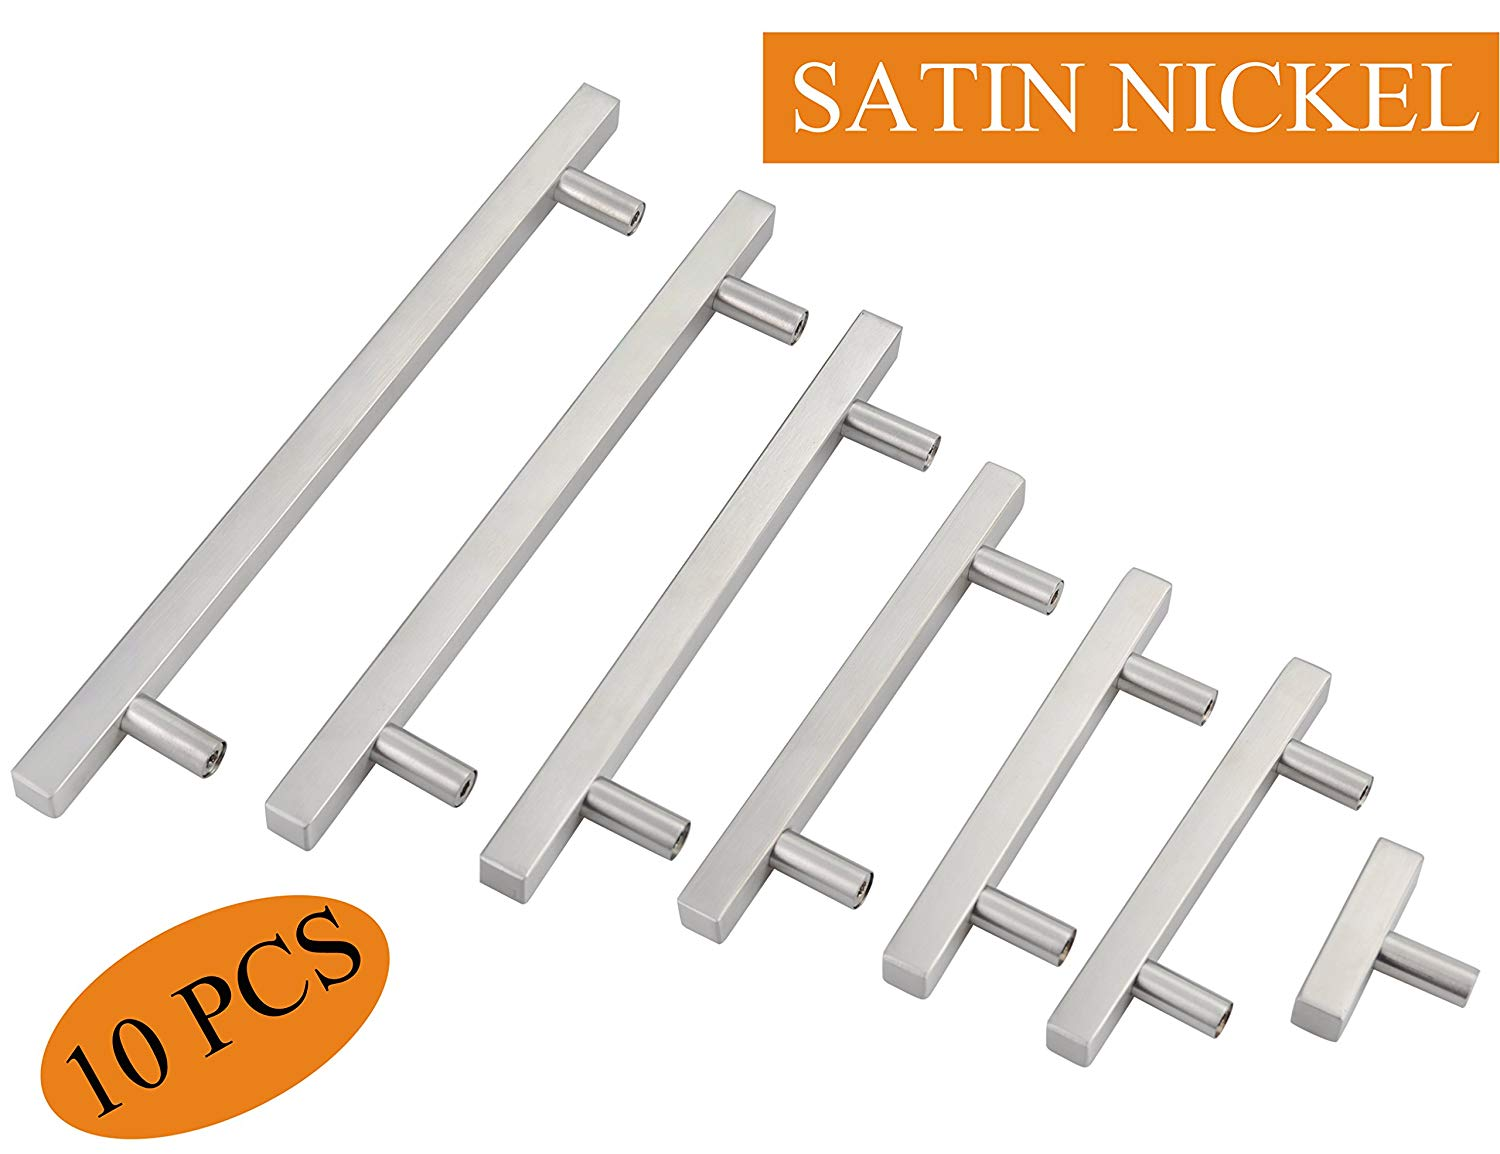 "Silver Dresser Handles:Cabinet Hardware Cupboard Pull Kitchen Cabinet T Bar Handle Dresser Knobs Set - 10"" Total Length,7-3/8 IN Hole Centers - 10 Pack,YTHD1212BN192-10PAMZ"